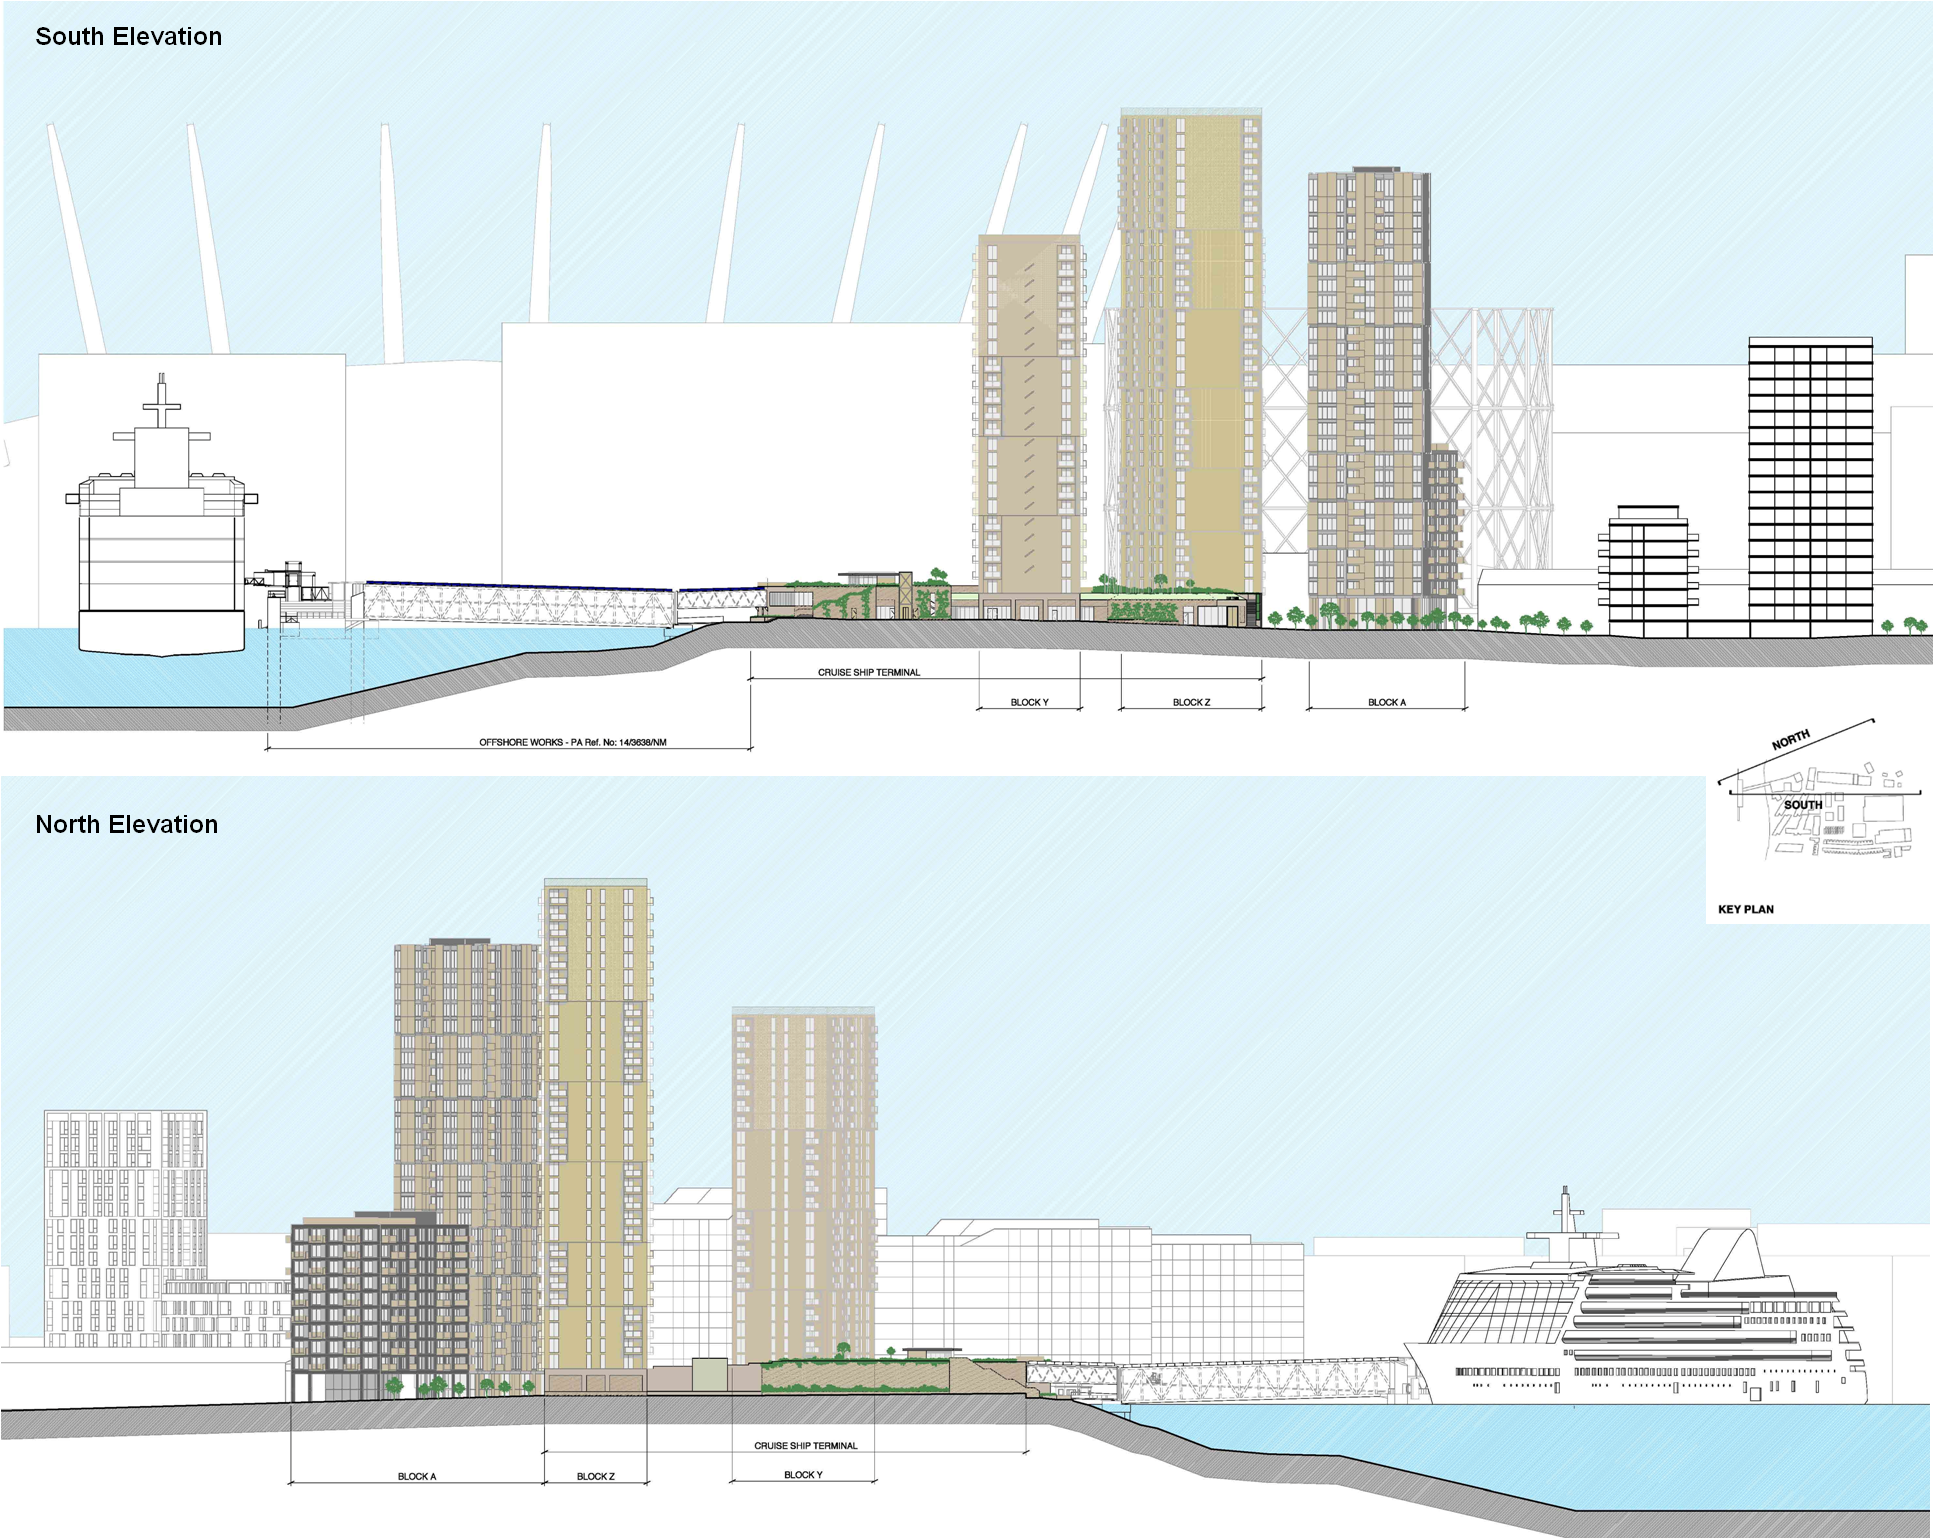 North and South elevations of Enderby Place proposals, revised June 2015 [Manser Practice]